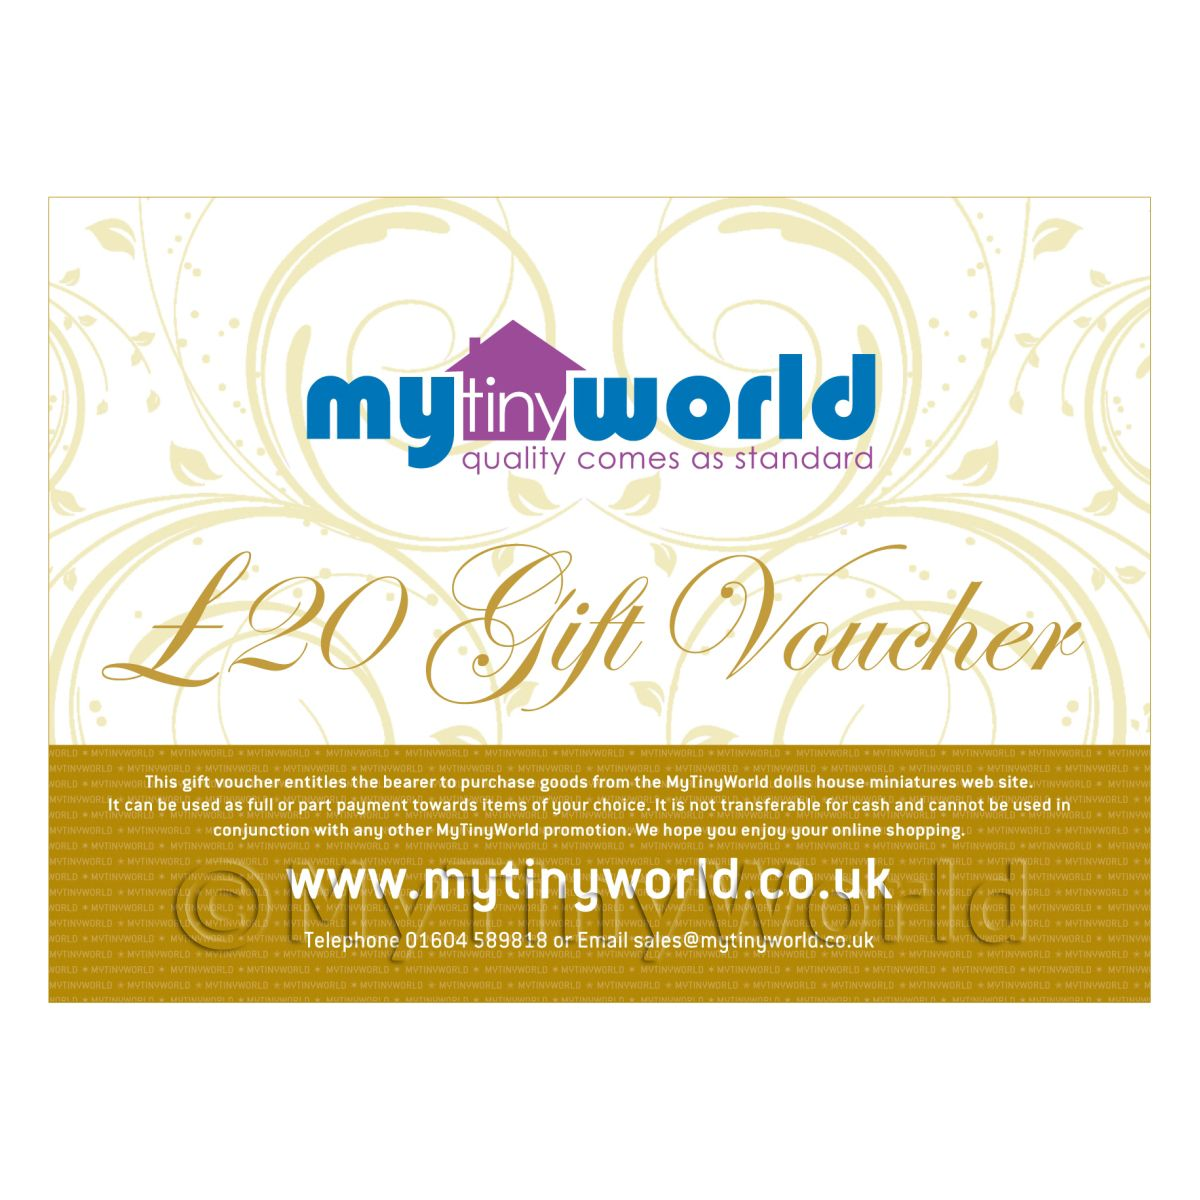 Twenty Pound Gift Voucher For MyTinyWorld Dolls House